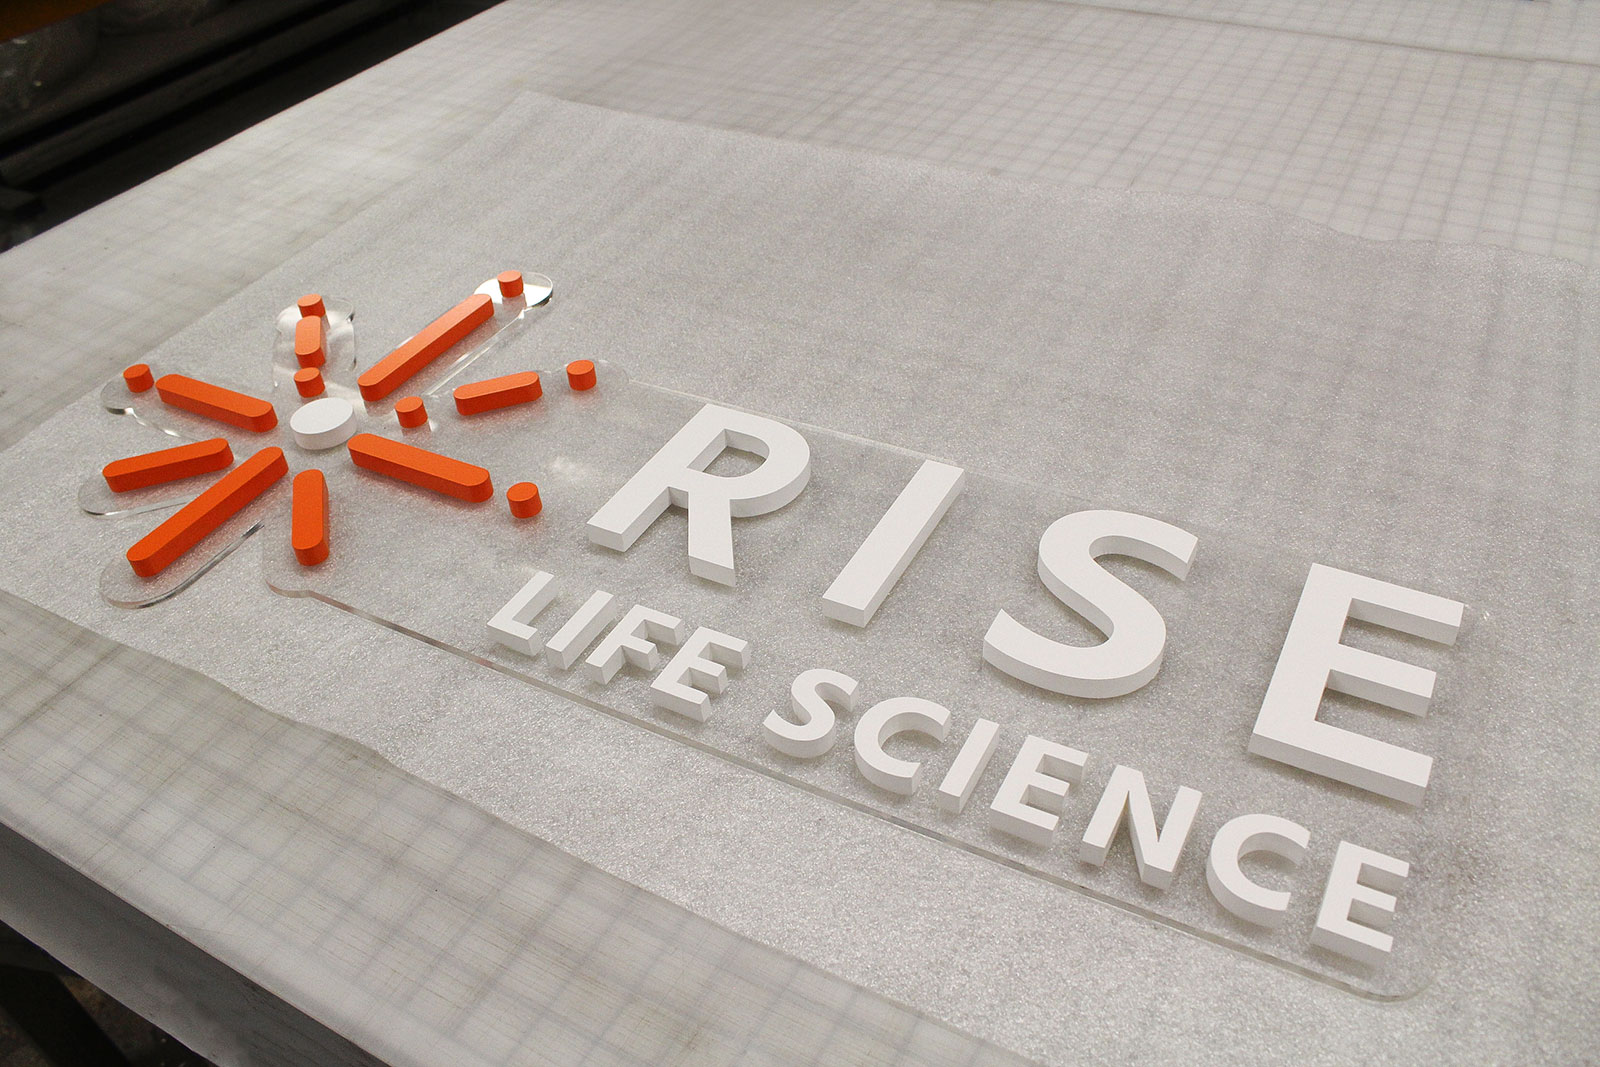 Rise Life Science acrylic logo sign and letters with a transparent background for company lobby branding